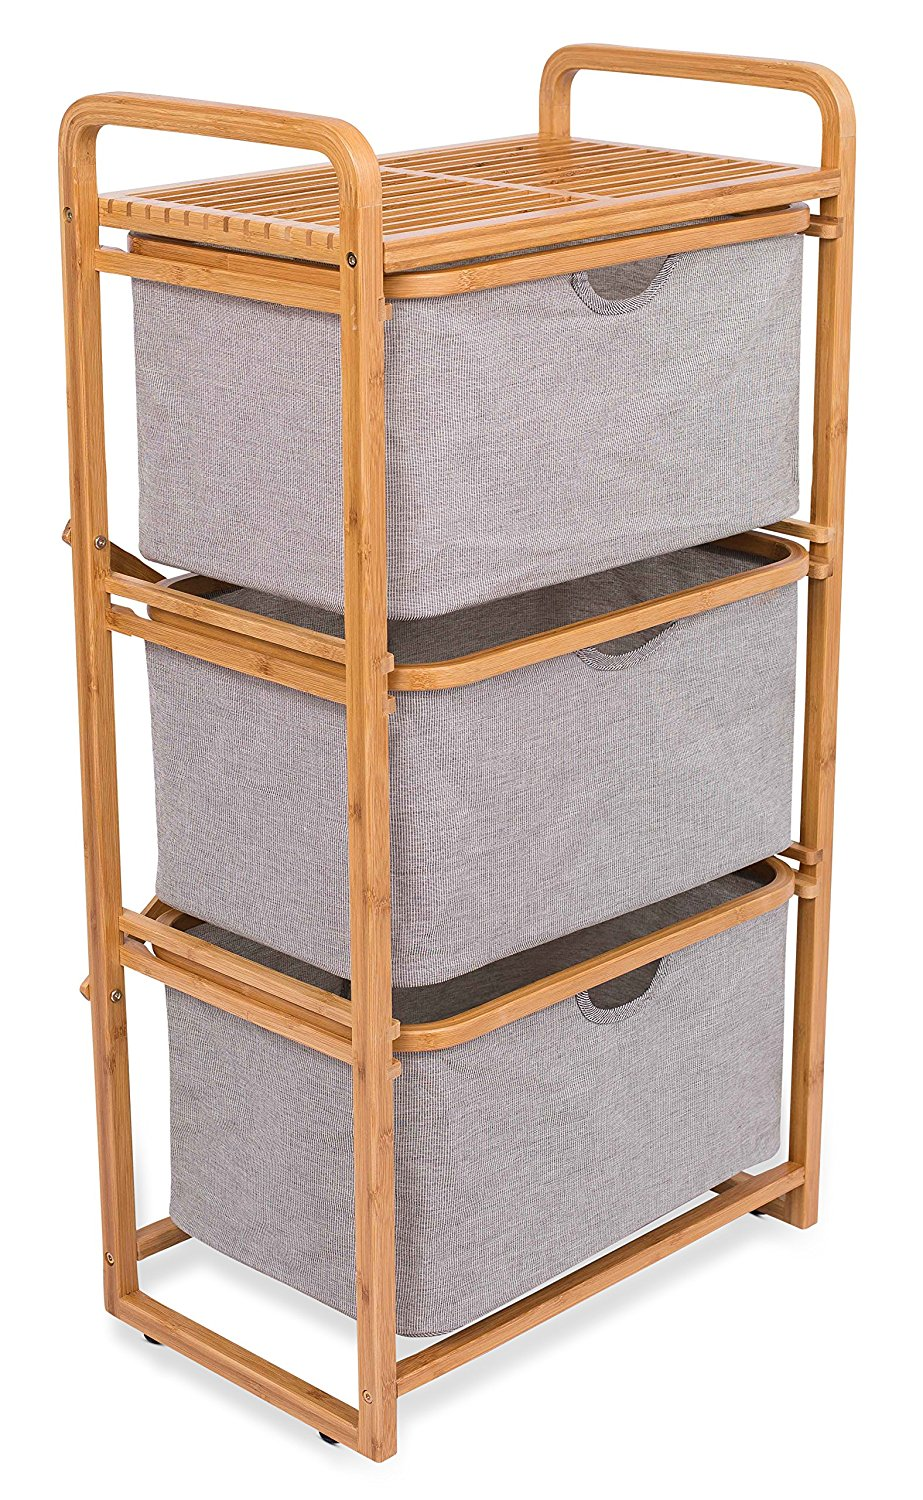 BirdRock Home 3 Drawer Bamboo Dresser | 3 Tier Sliding Cloth Storage Bins  Chest Of Drawers